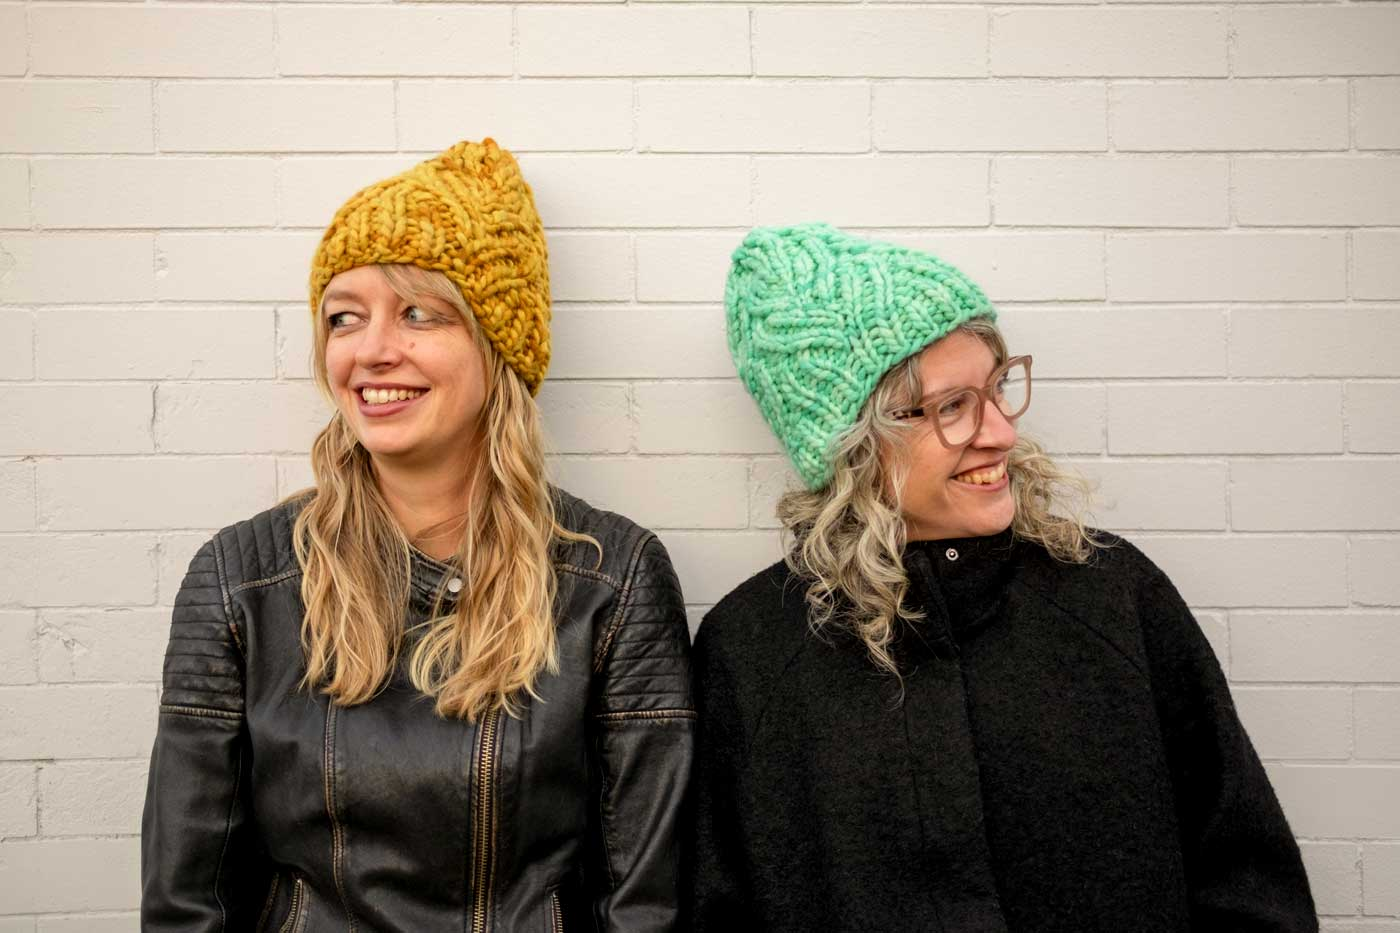 Amber in a yellow Neighborhood Holiday hat and Jaime in a mint green one, standing against a white brick wall.